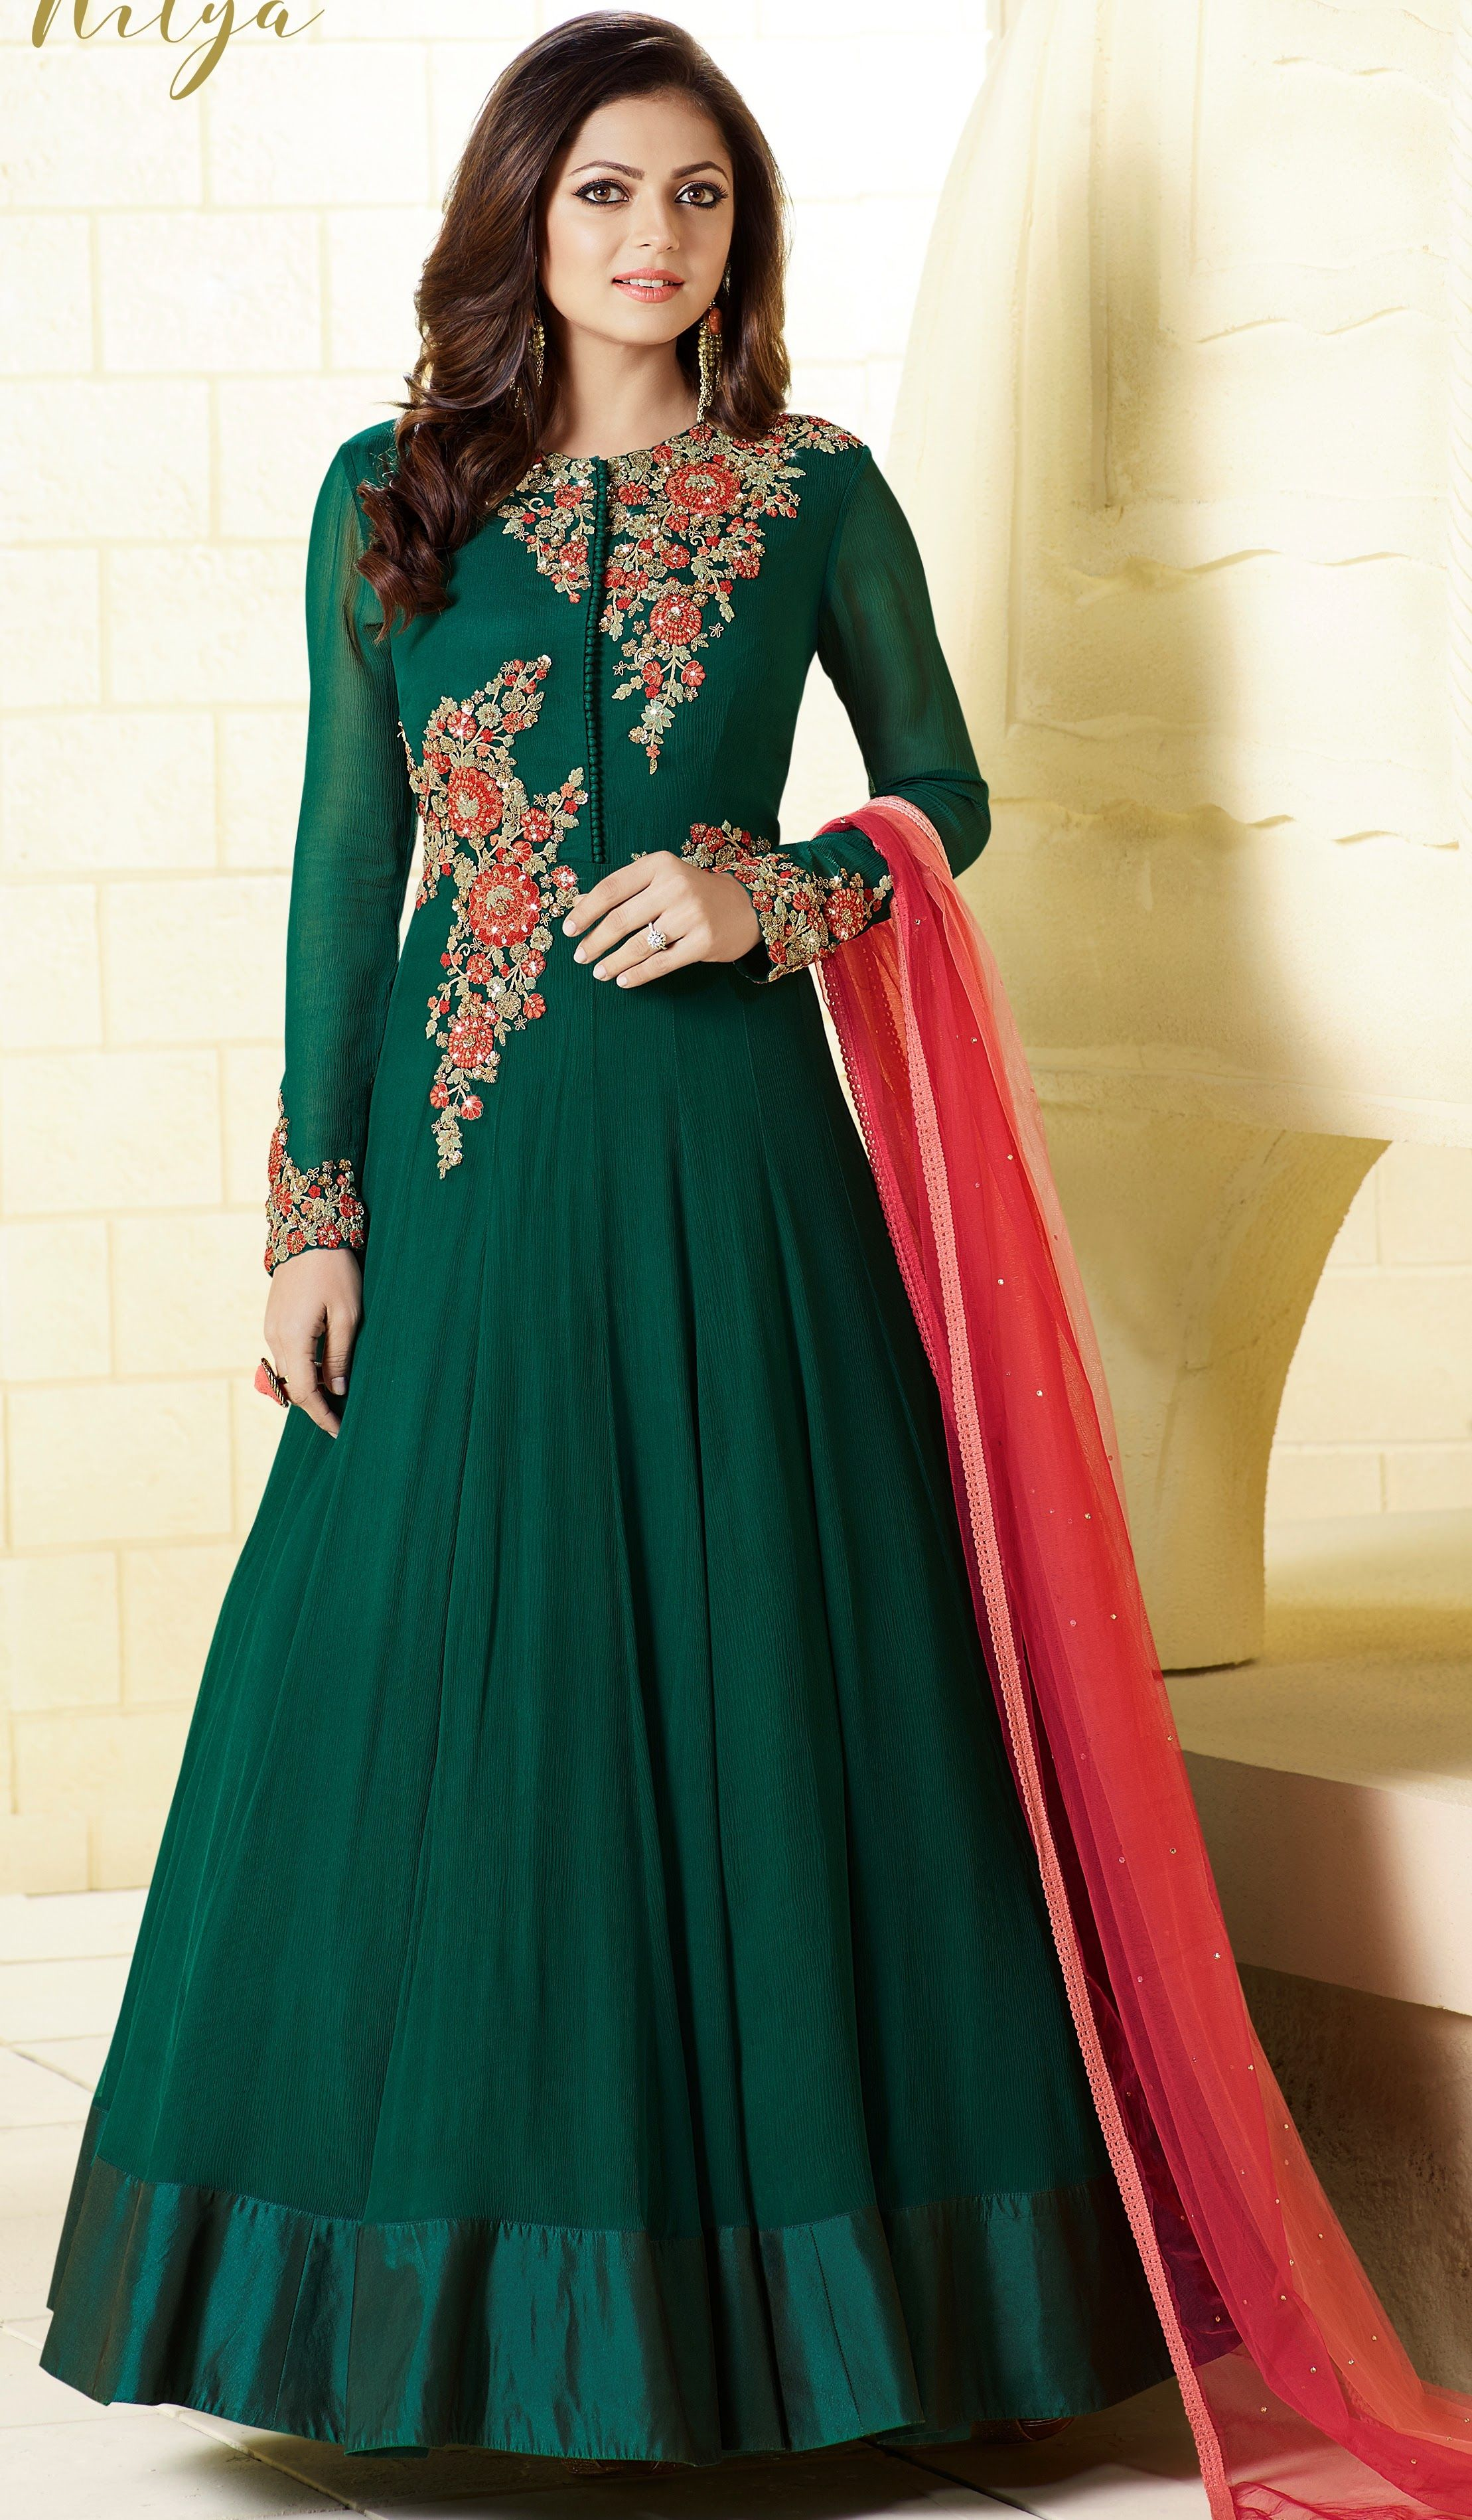 56234534215e Drashti Dhami Chiffon green floor length Anarkali suit with resham stone  and sleeves work and dupatta with lace and stones